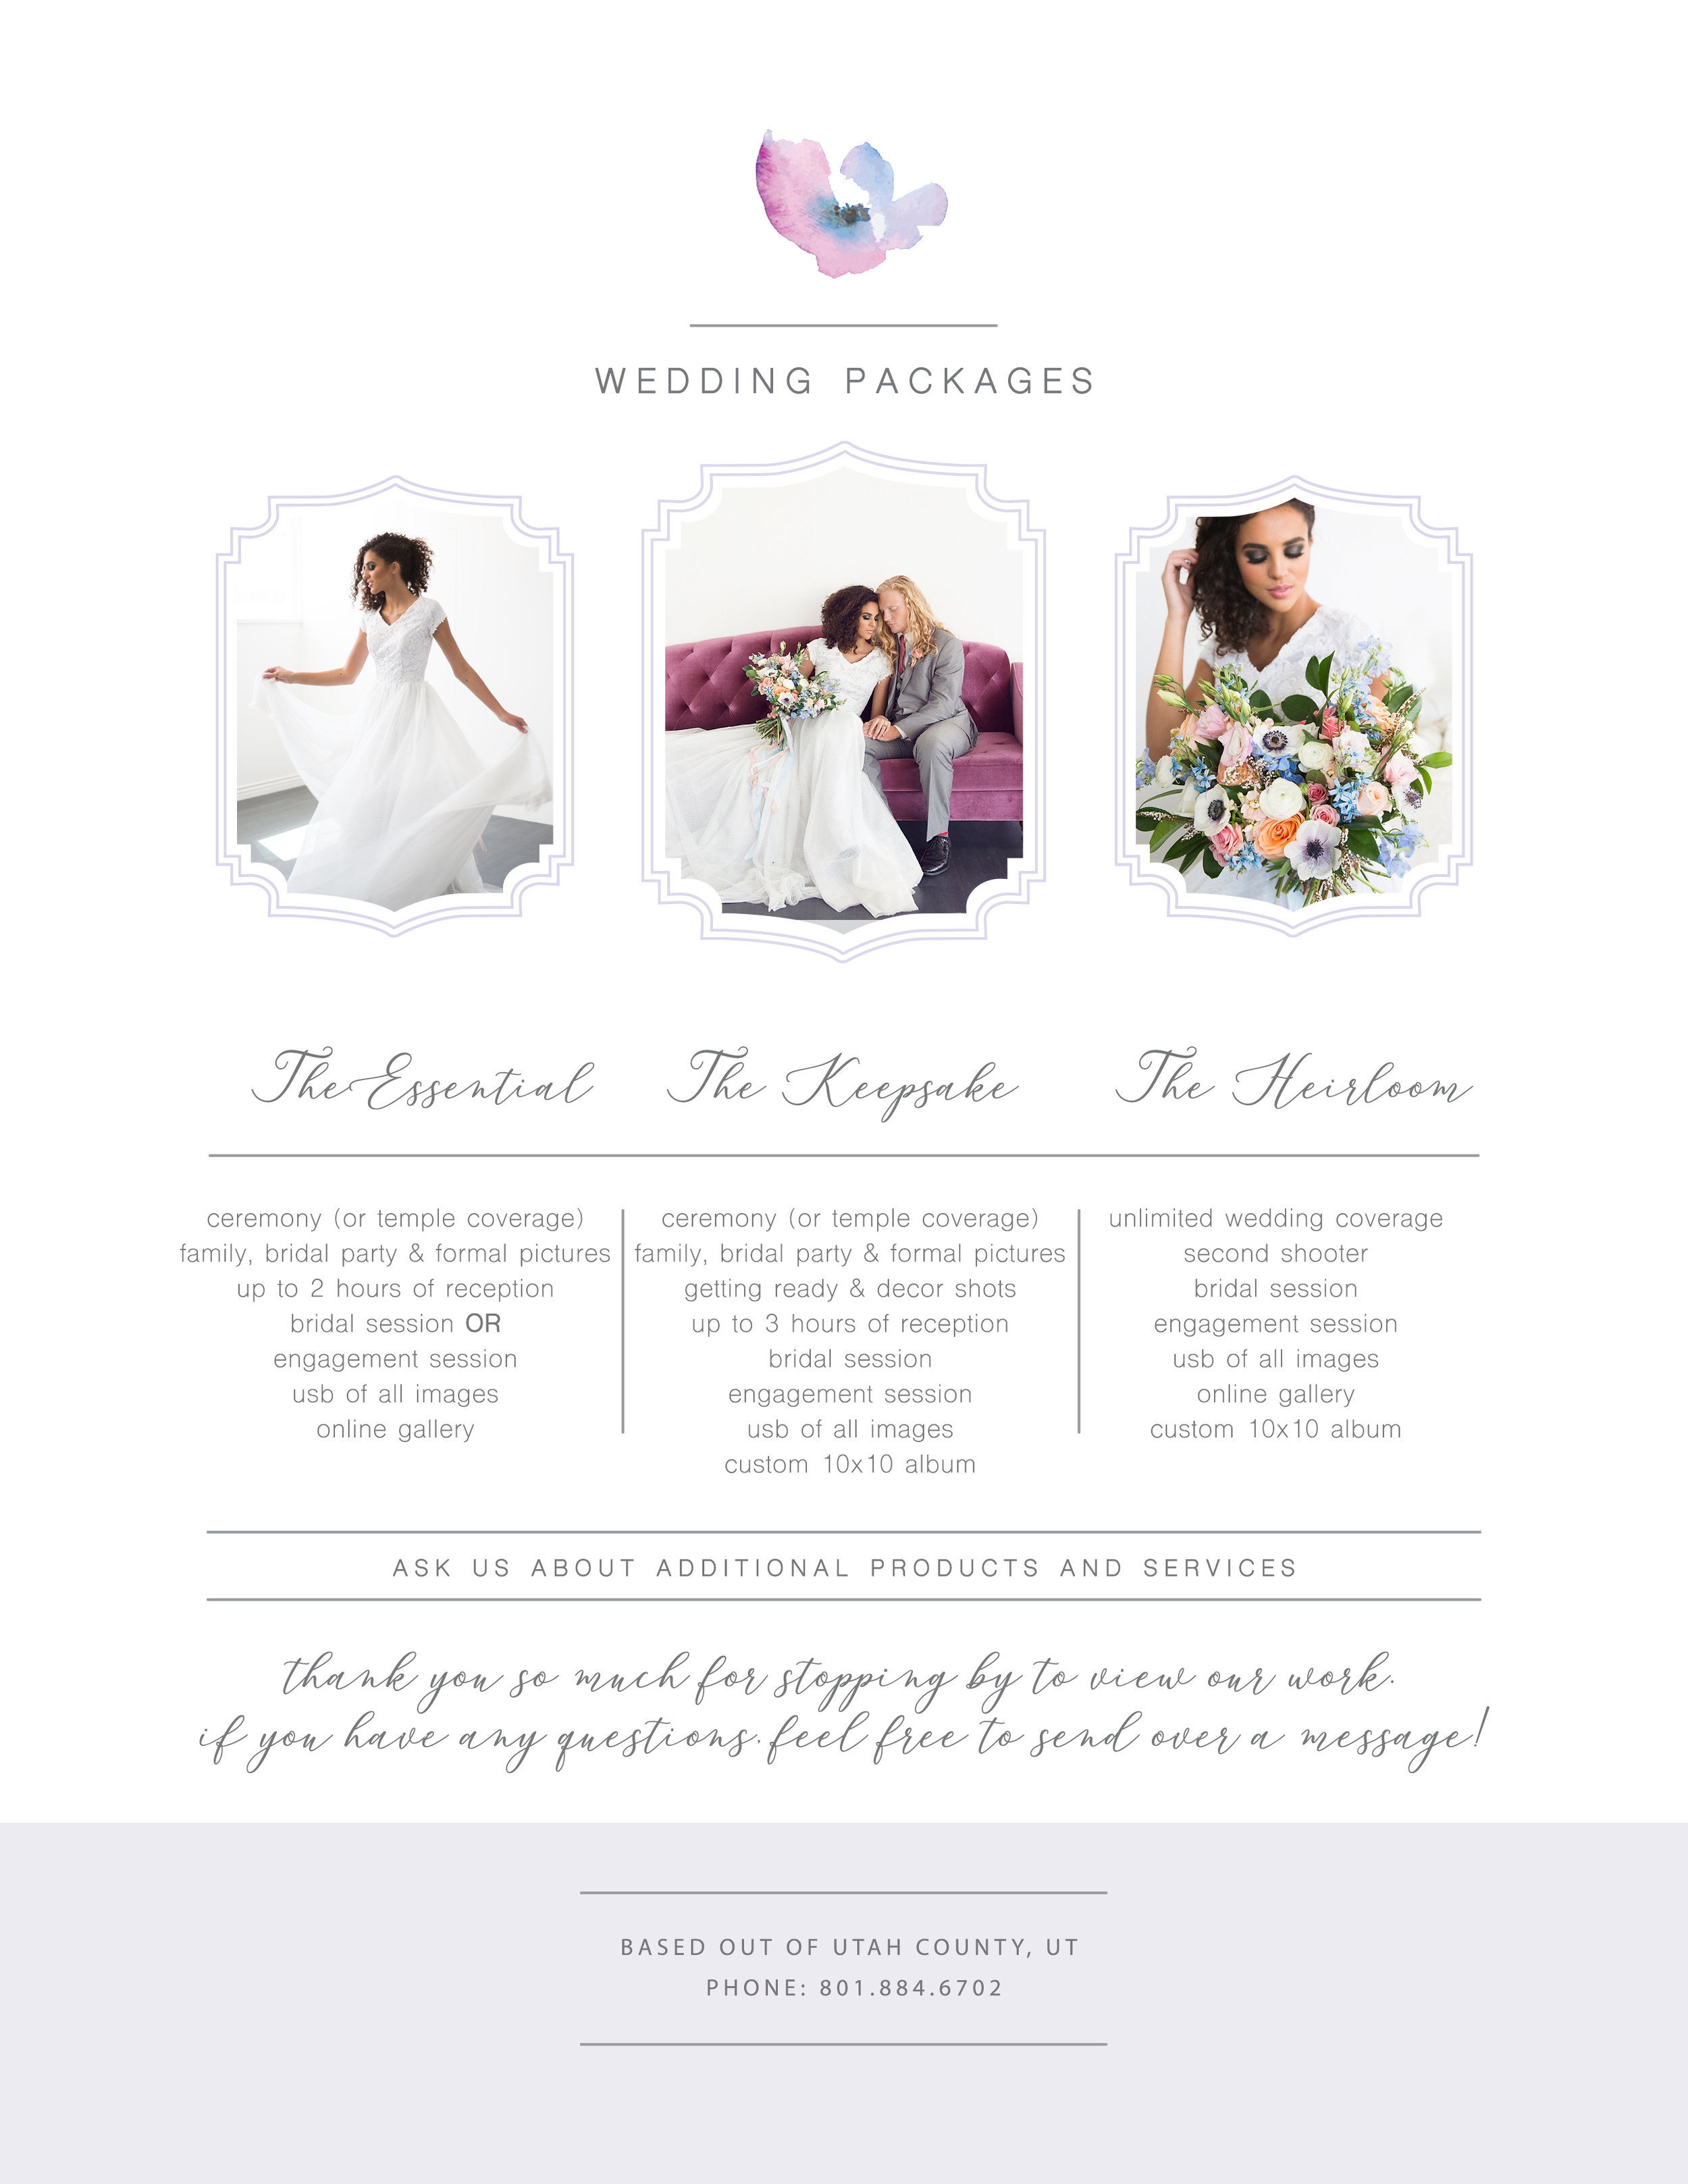 WeddingPackages2019web.jpg